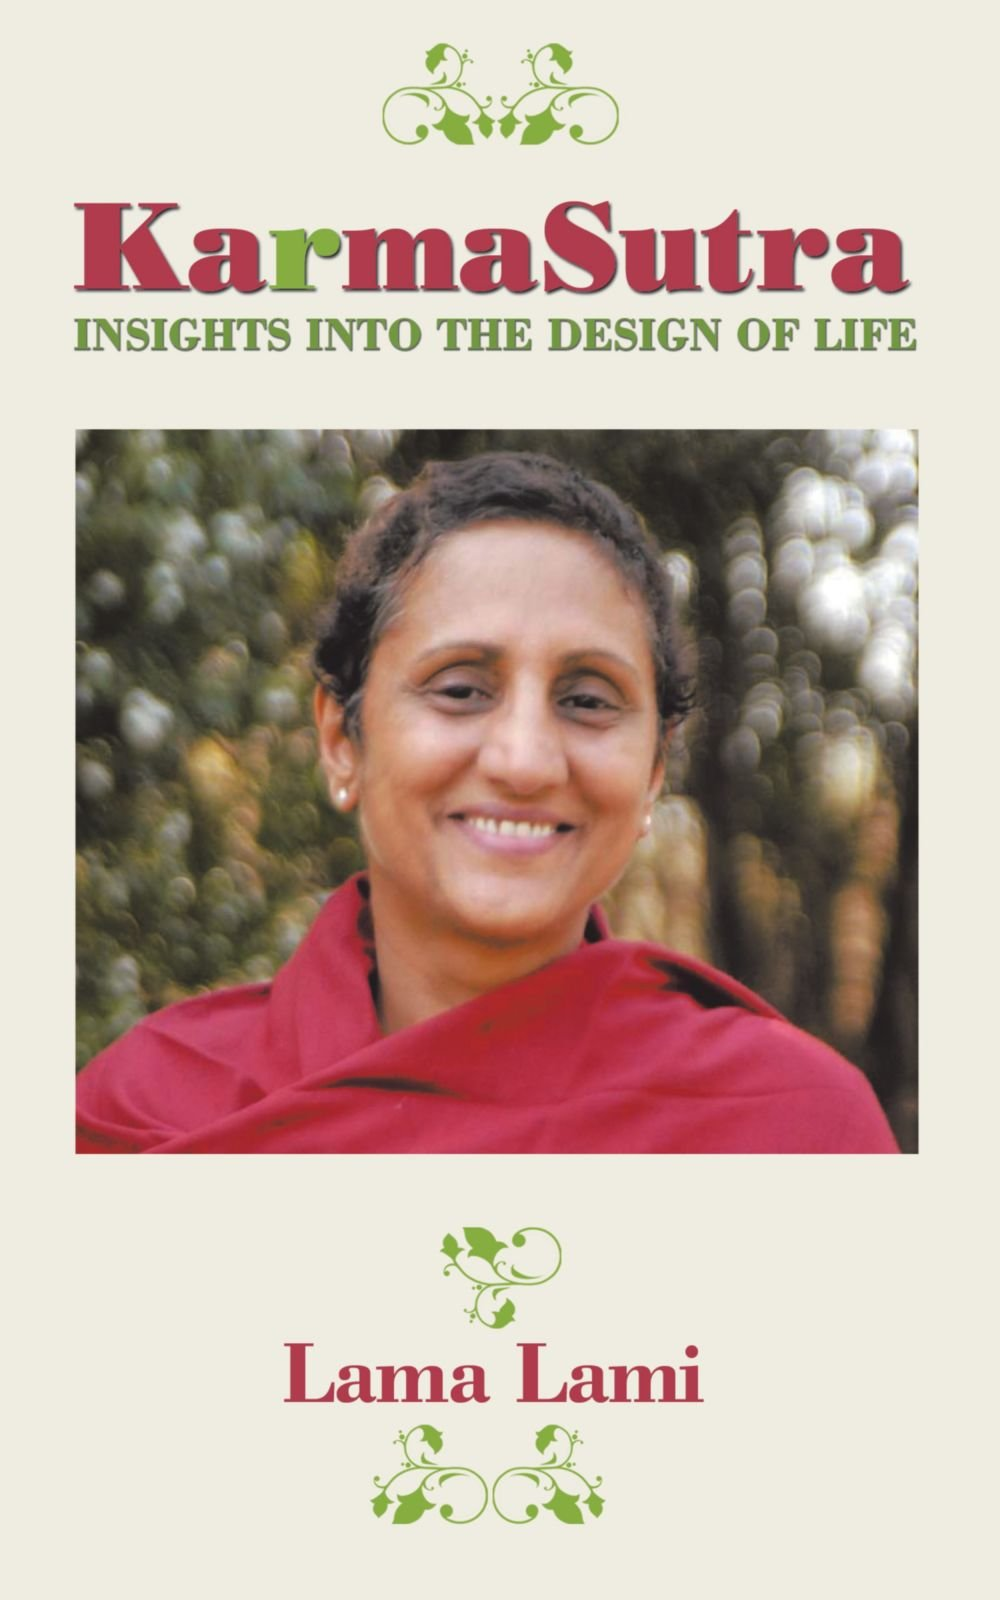 Karma Sutra: Insights Into the Design of Life